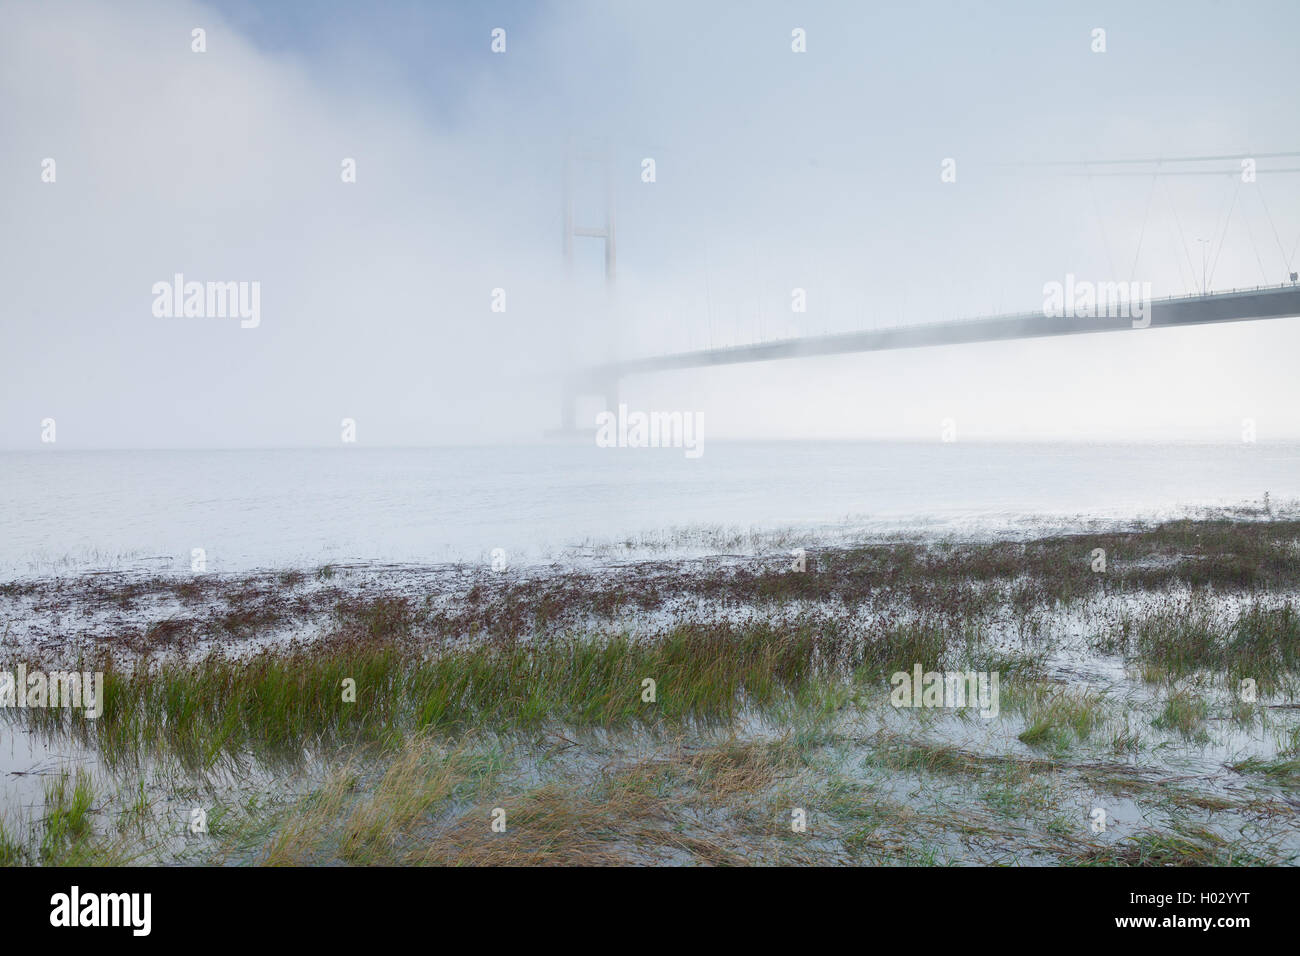 The Humber Bridge in mist and fog. The bridge links Barton-upon-Humber in North Lincolnshire to Hessle in East Yorkshire. - Stock Image